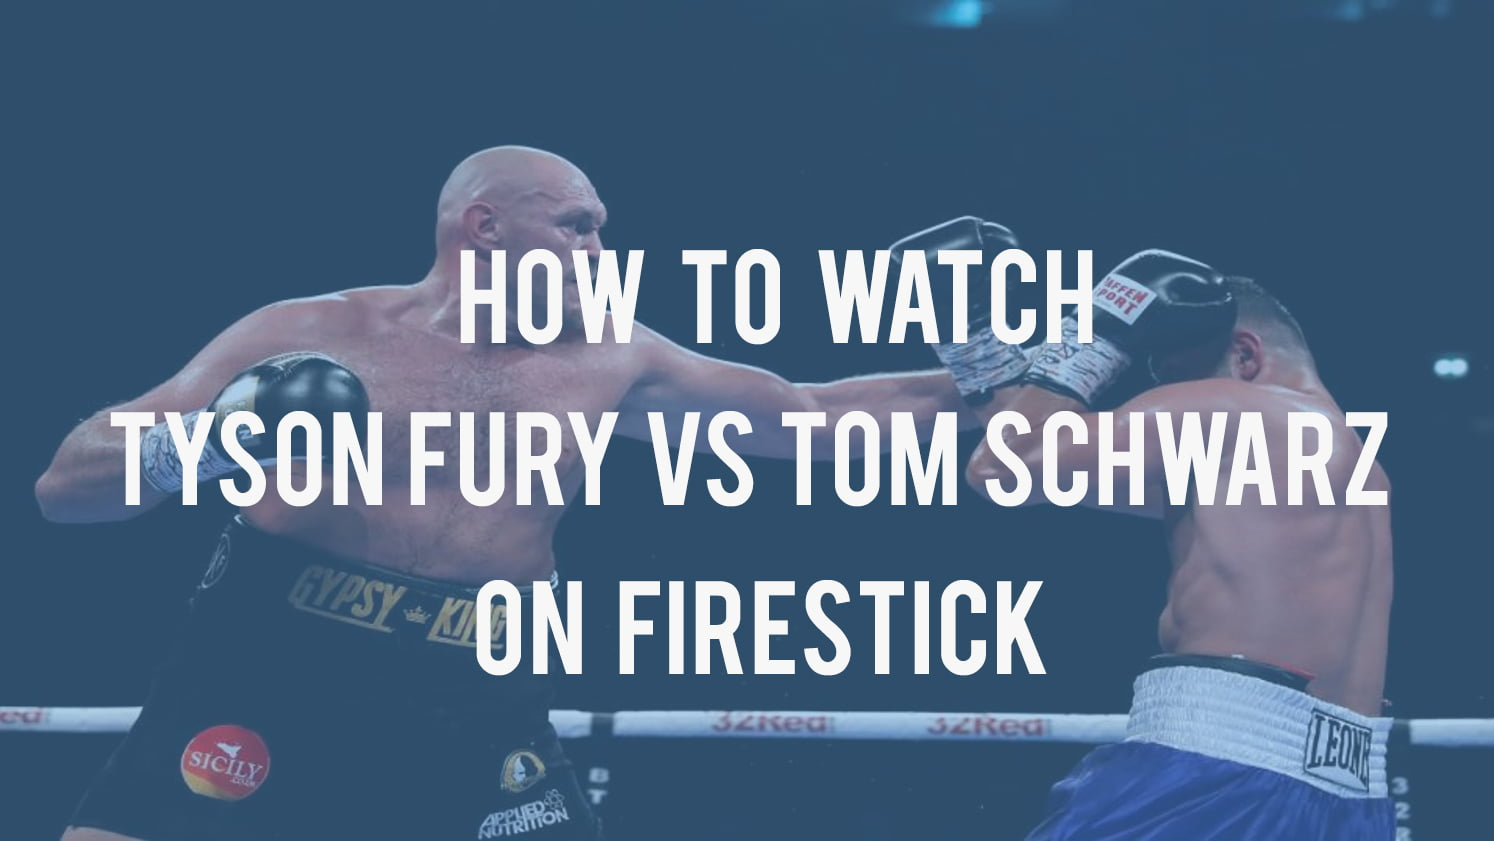 Tyson Fury Vs Tom Schwarz on Firestick